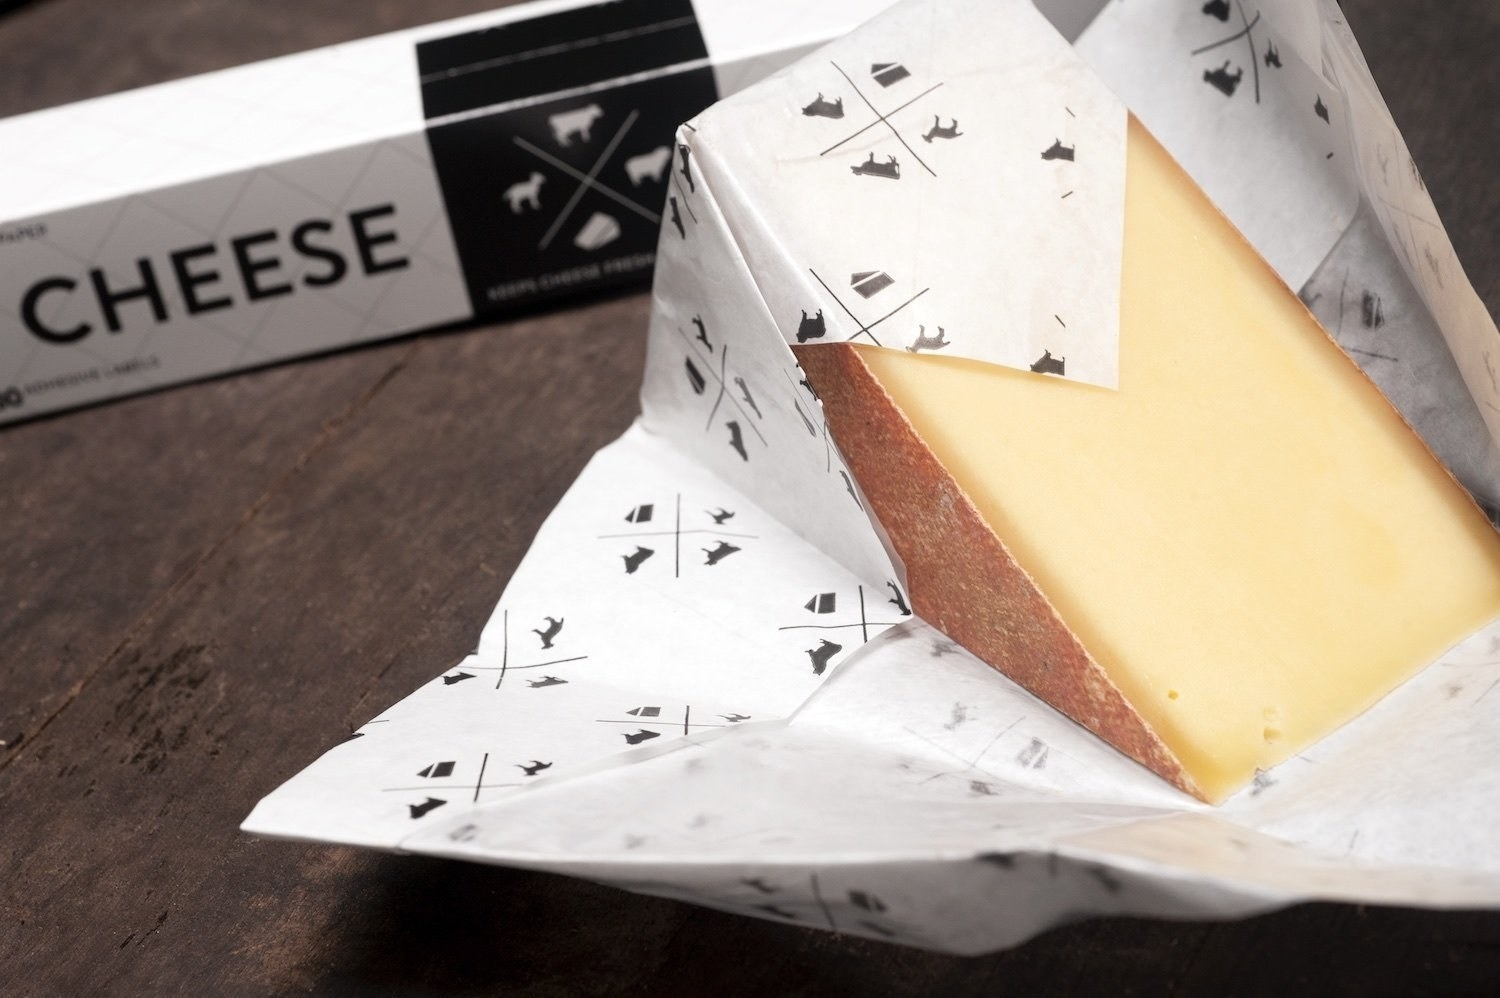 The paper wrapped around a wedge of hard cheese